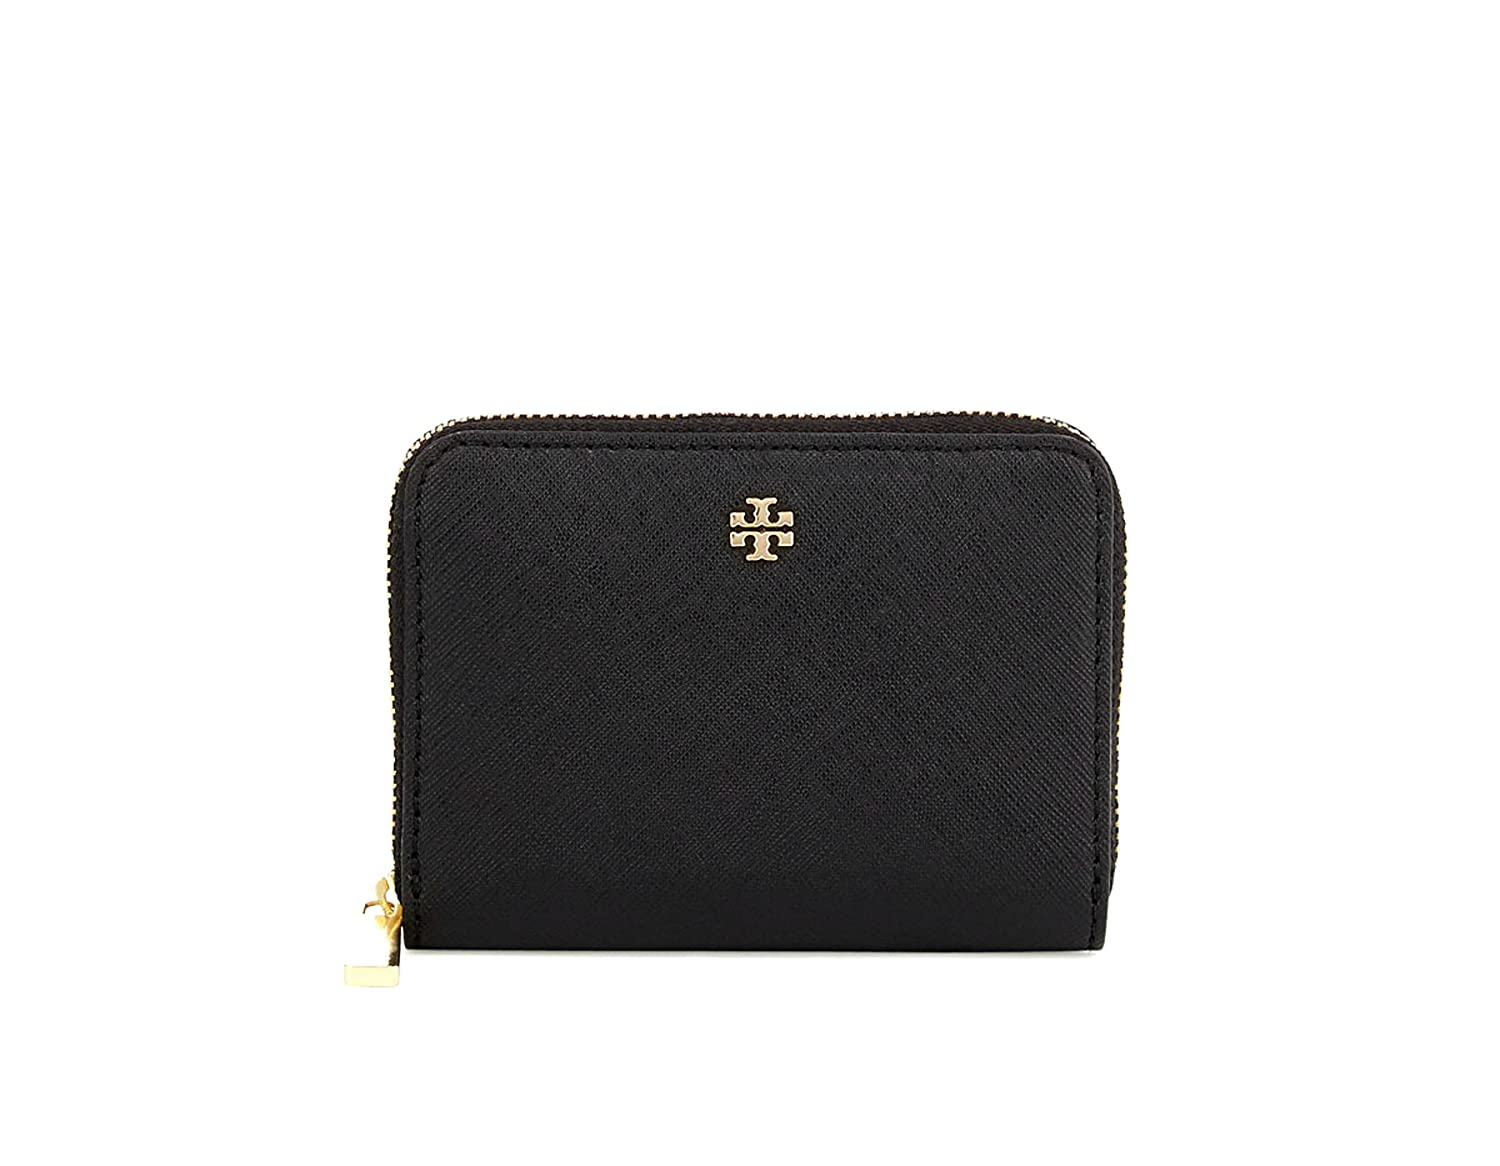 cd3df4dd034e5 Tory Burch Emerson Zip Coin Case Wallet 47391 at Amazon Women s Clothing  store